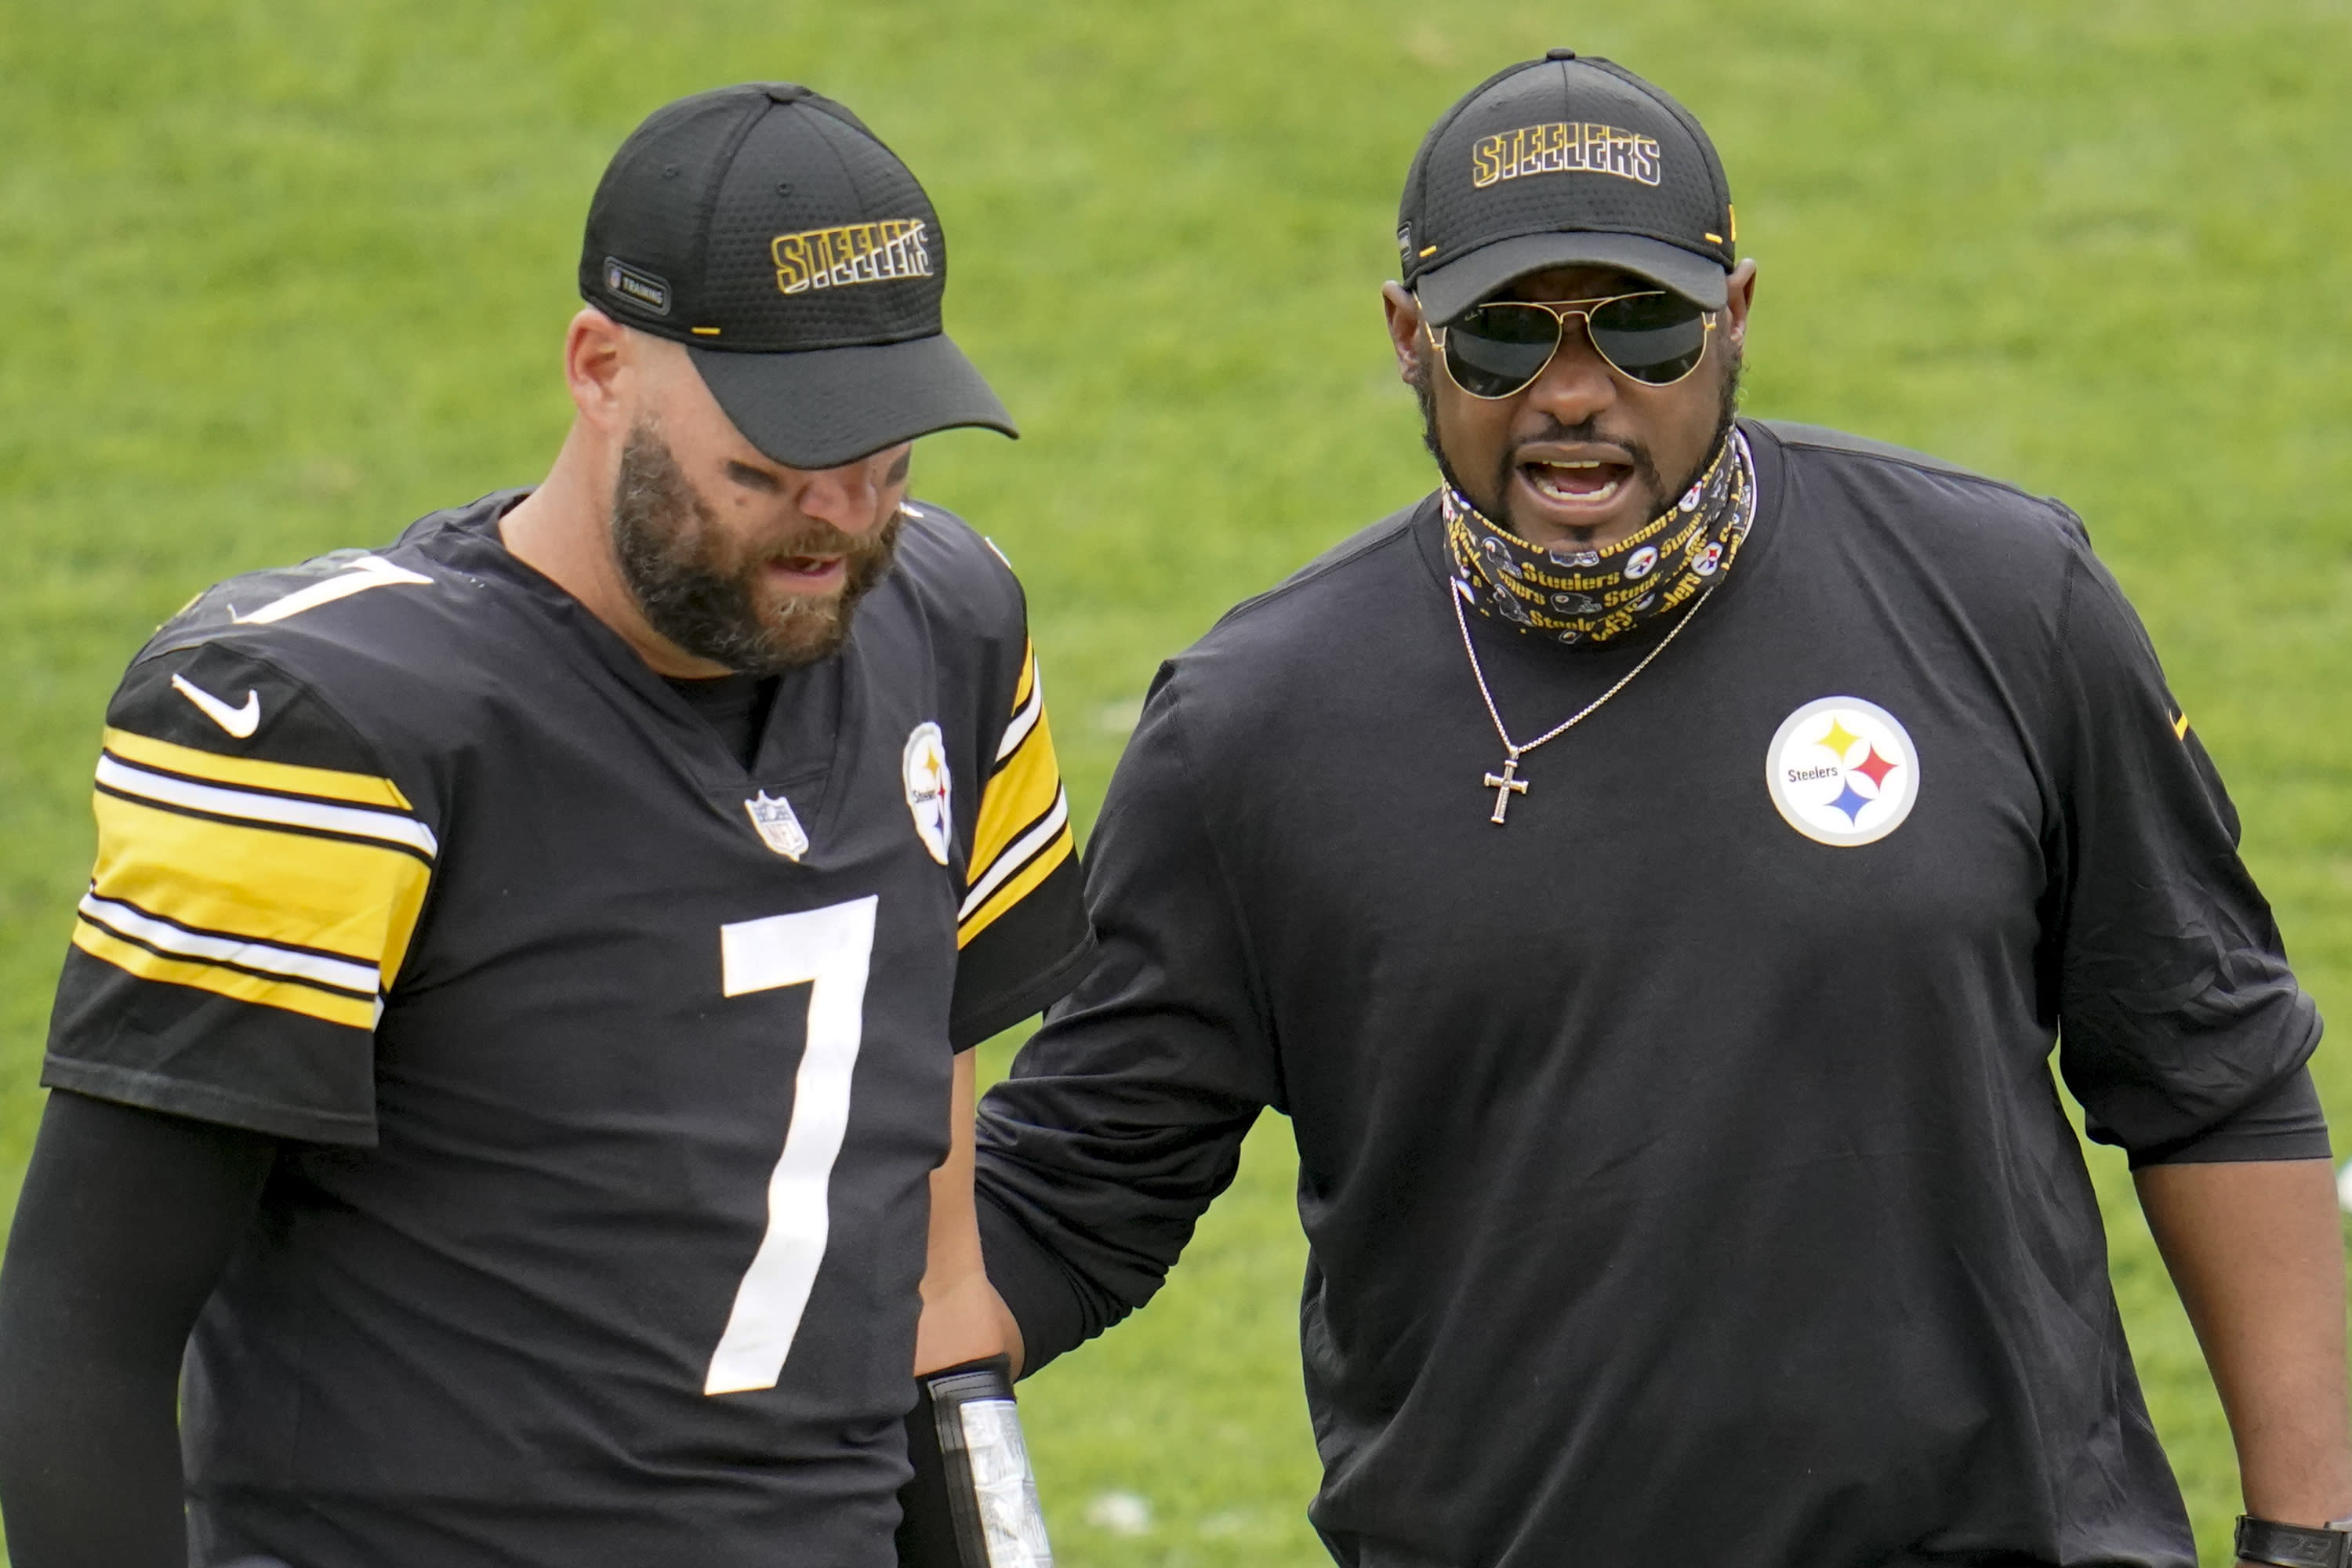 NFL news: Steelers, Mike Tomlin fined for mask violation